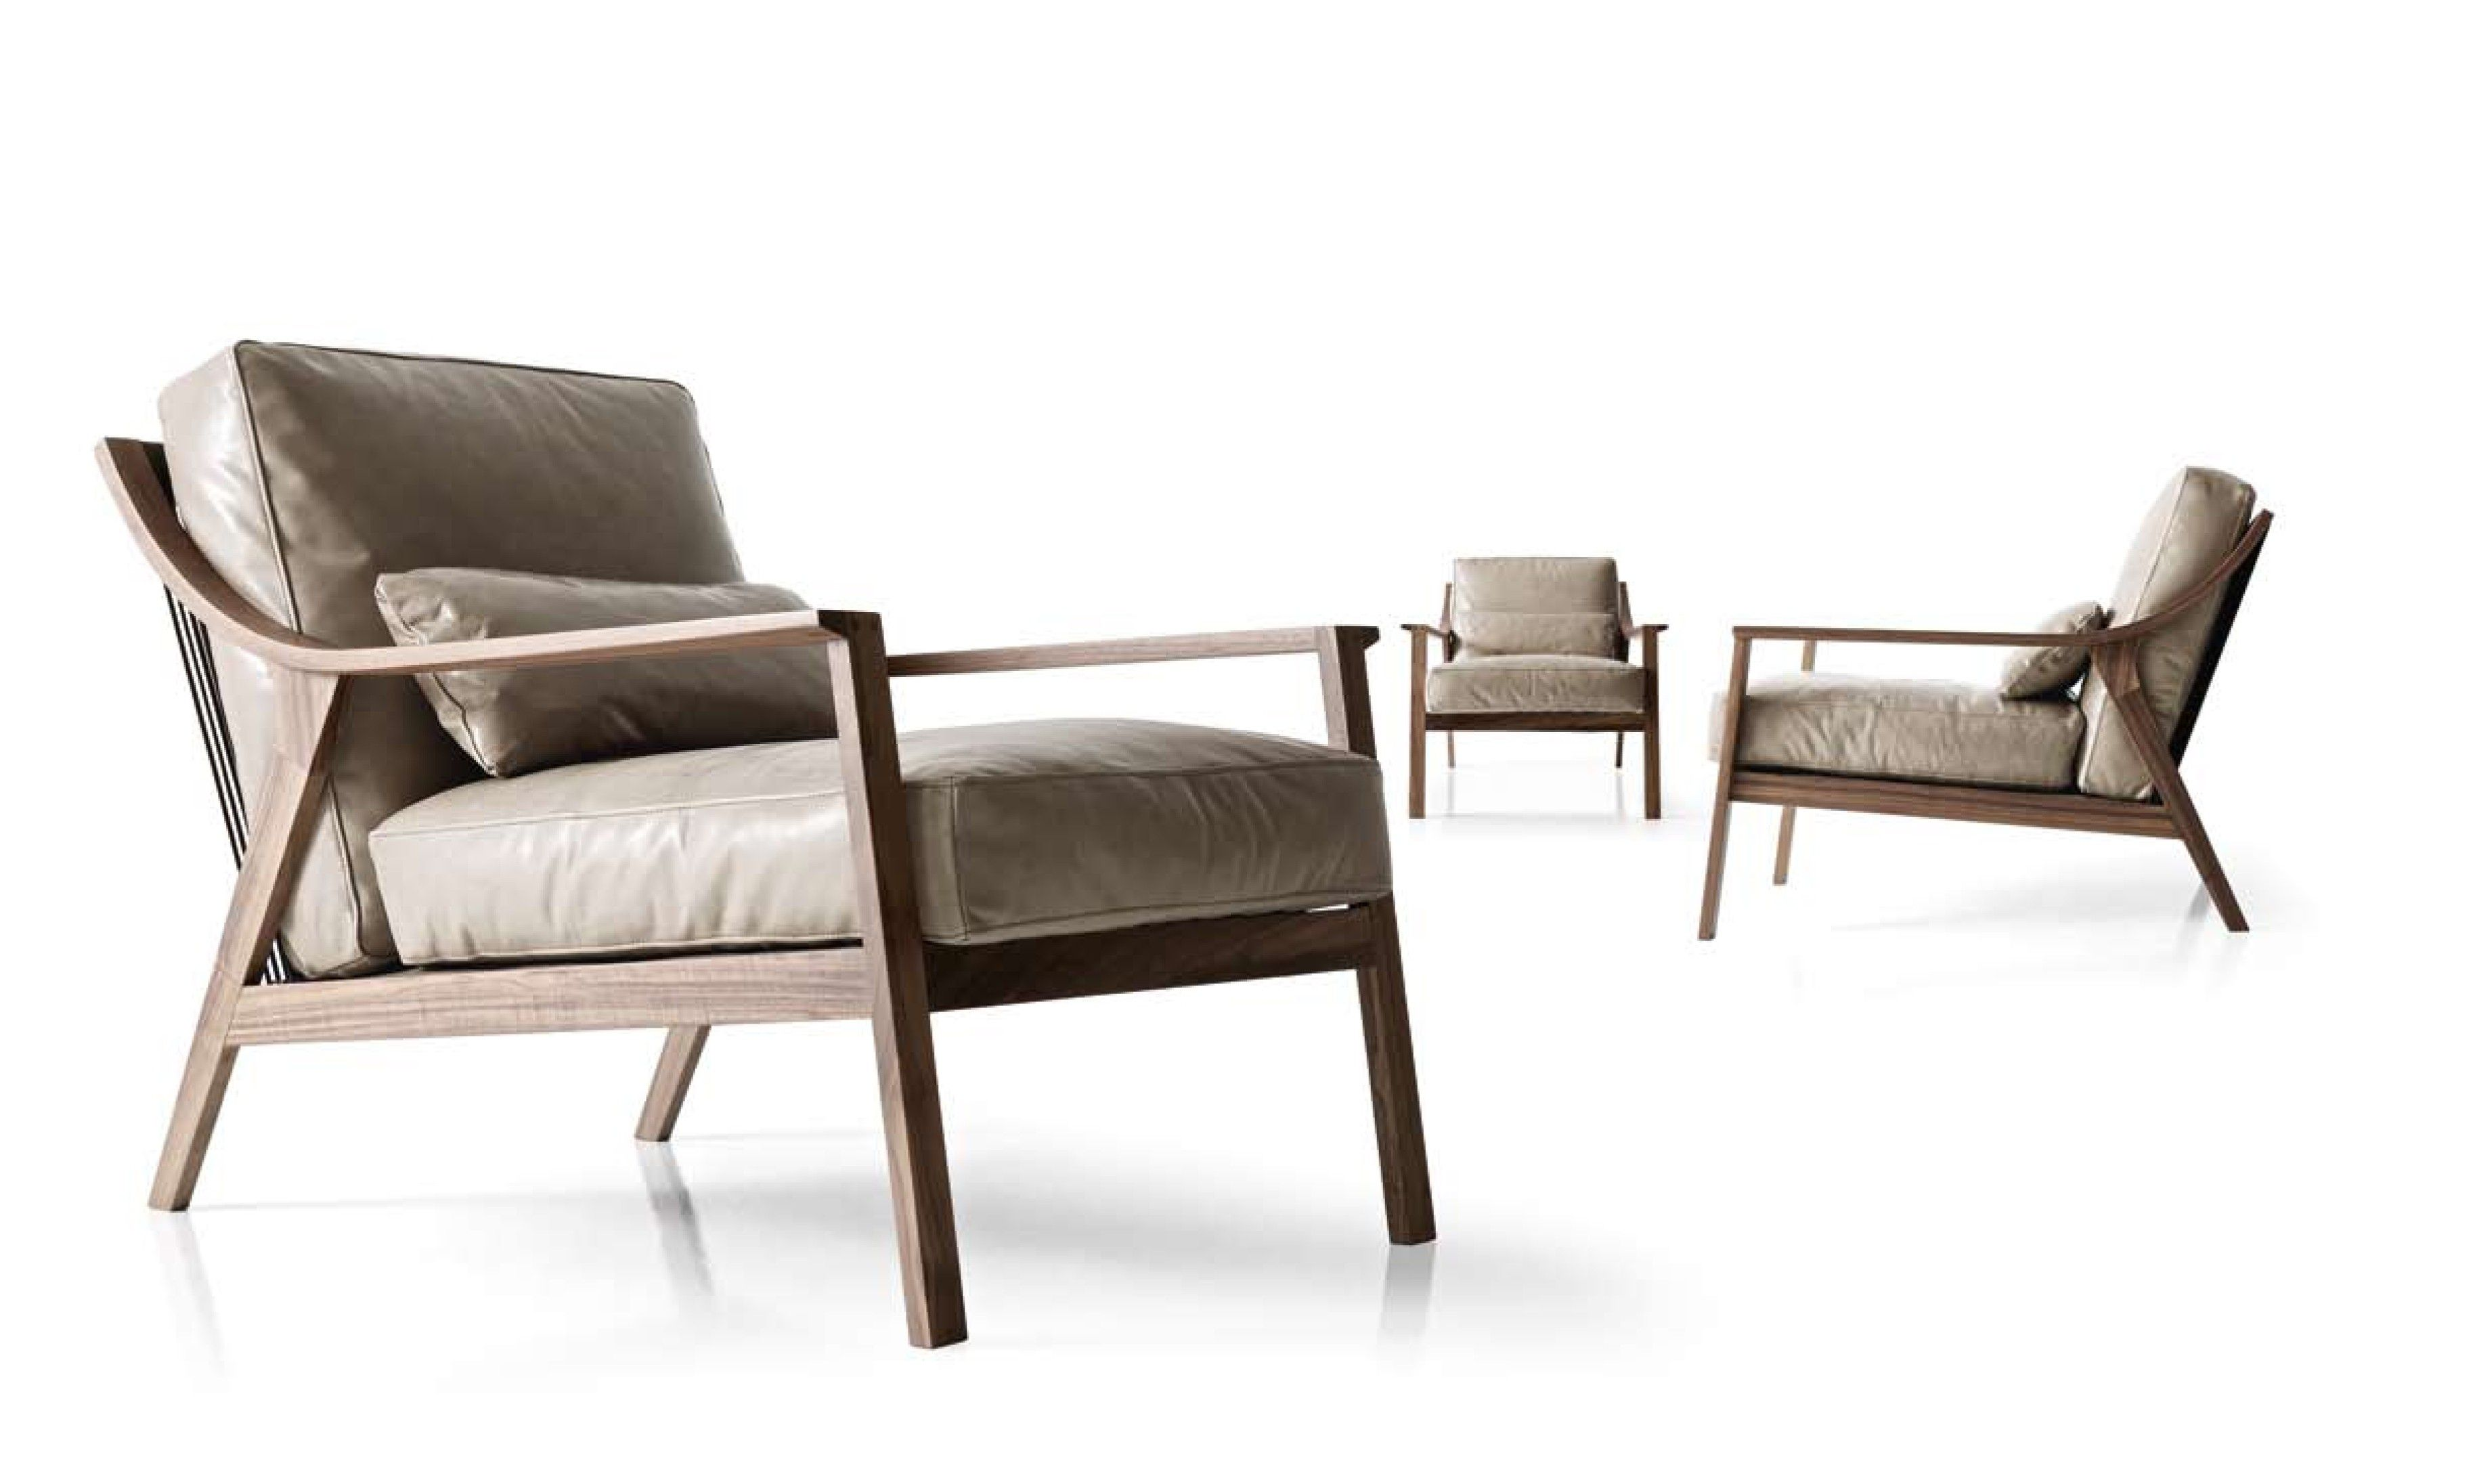 Ver design lady armchair | Seating - Lounge Chairs ...